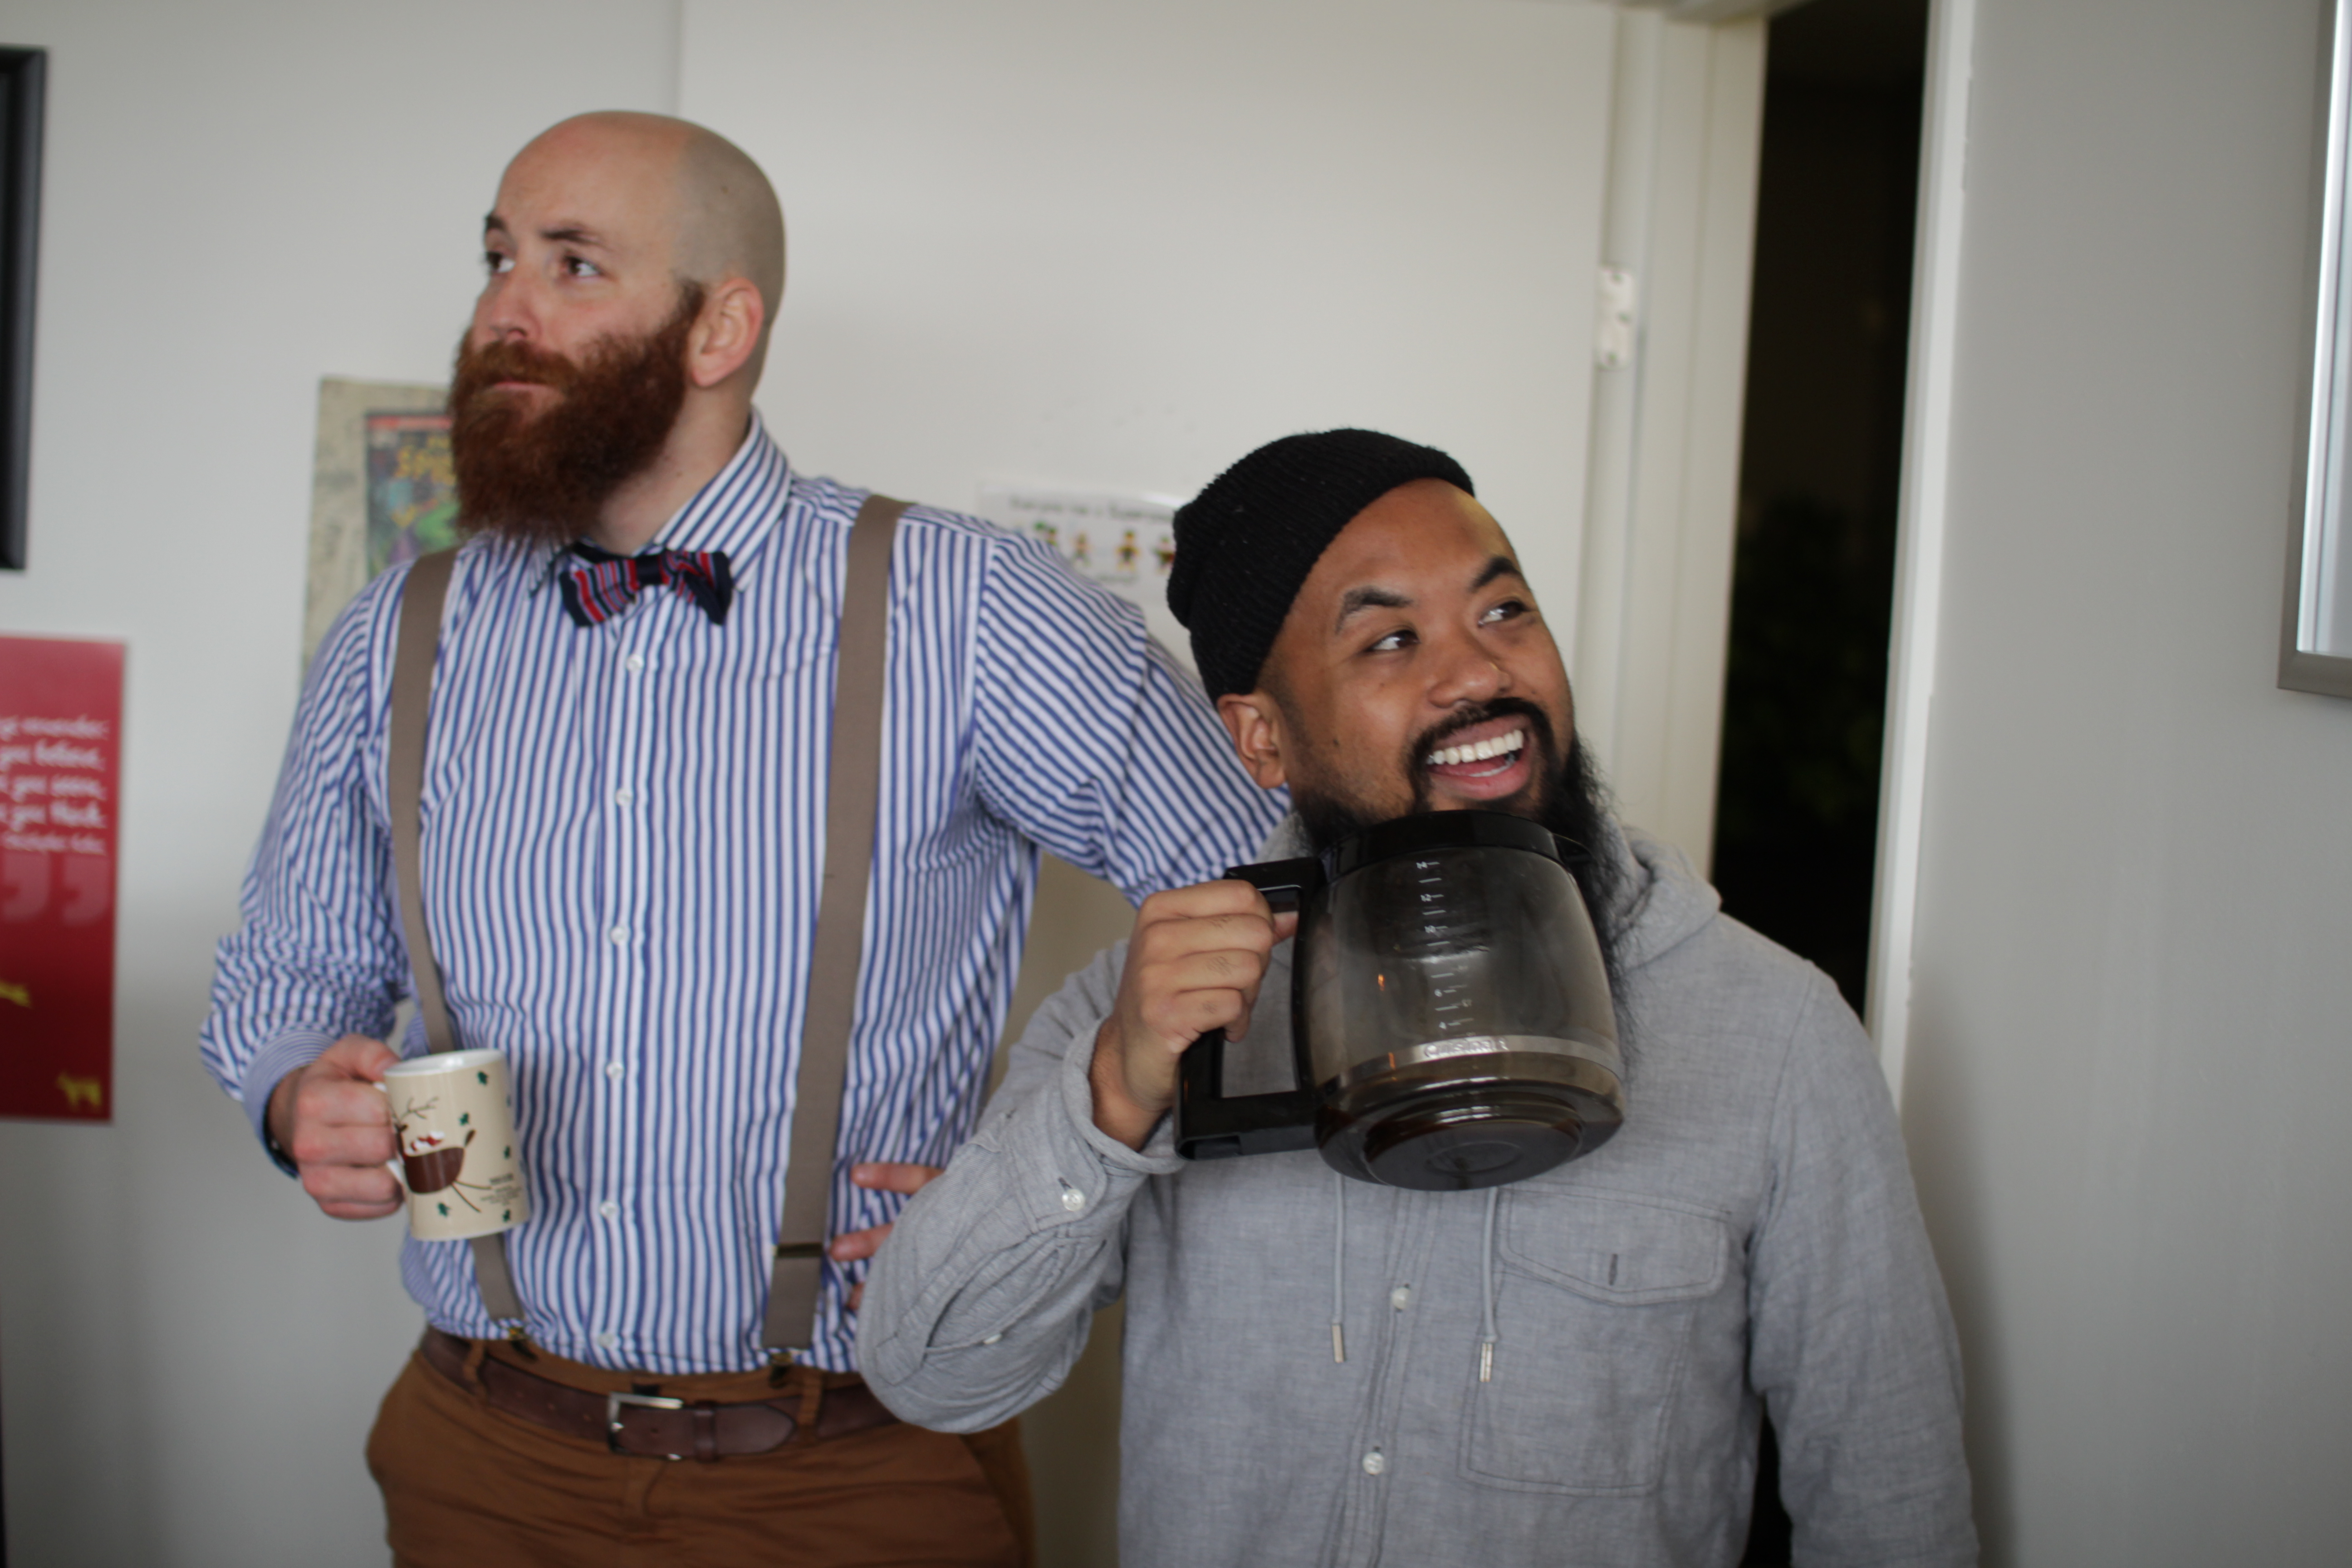 Professional Stock Photos-the two folks enjoying a coffee